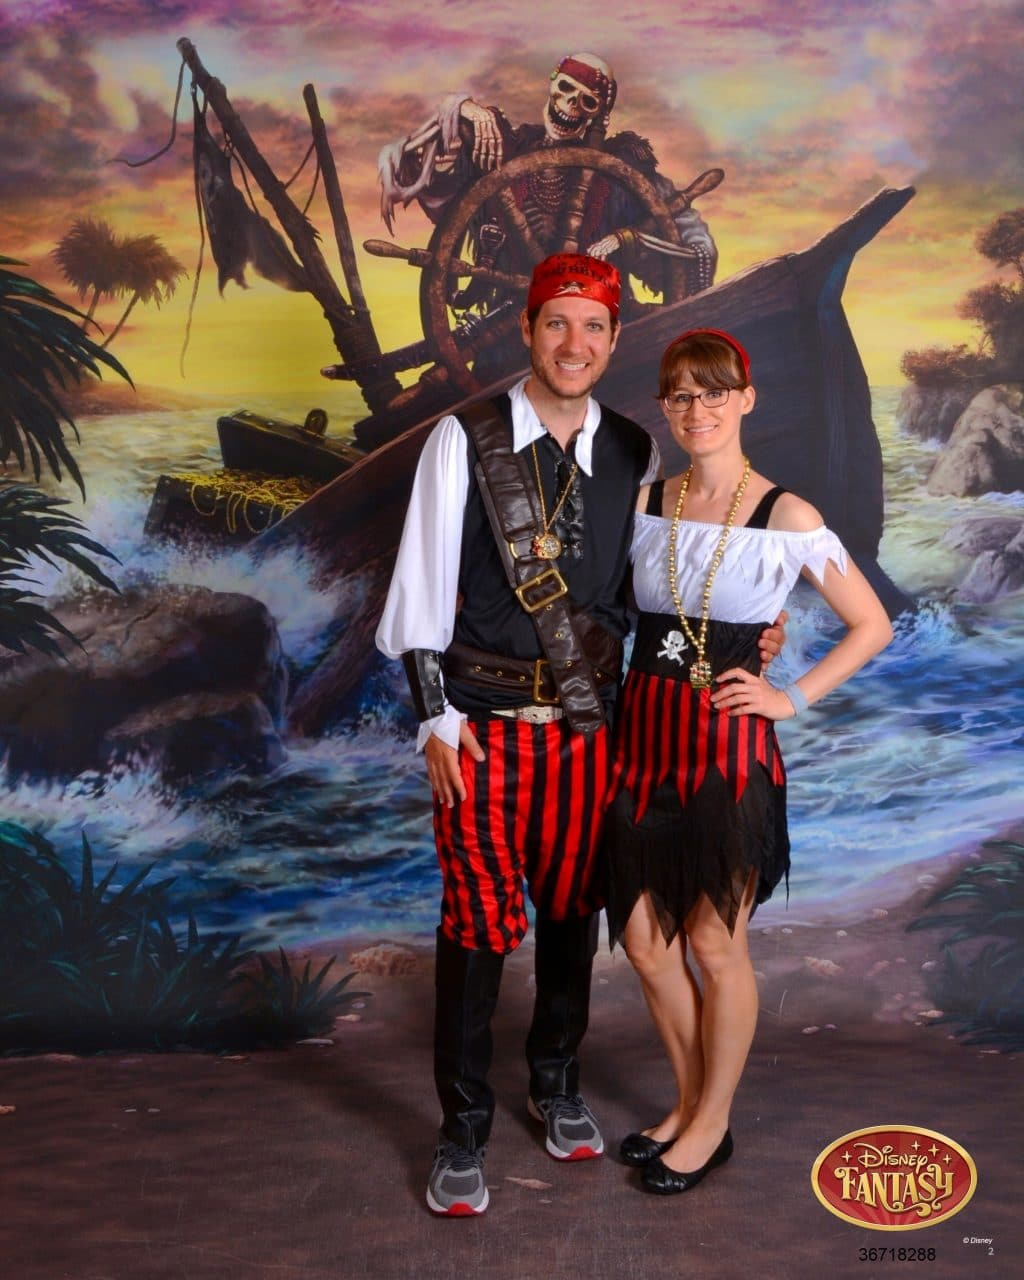 A man and woman dressed as pirates and smiling in front of a pirate ship on the Disney Fantasy.